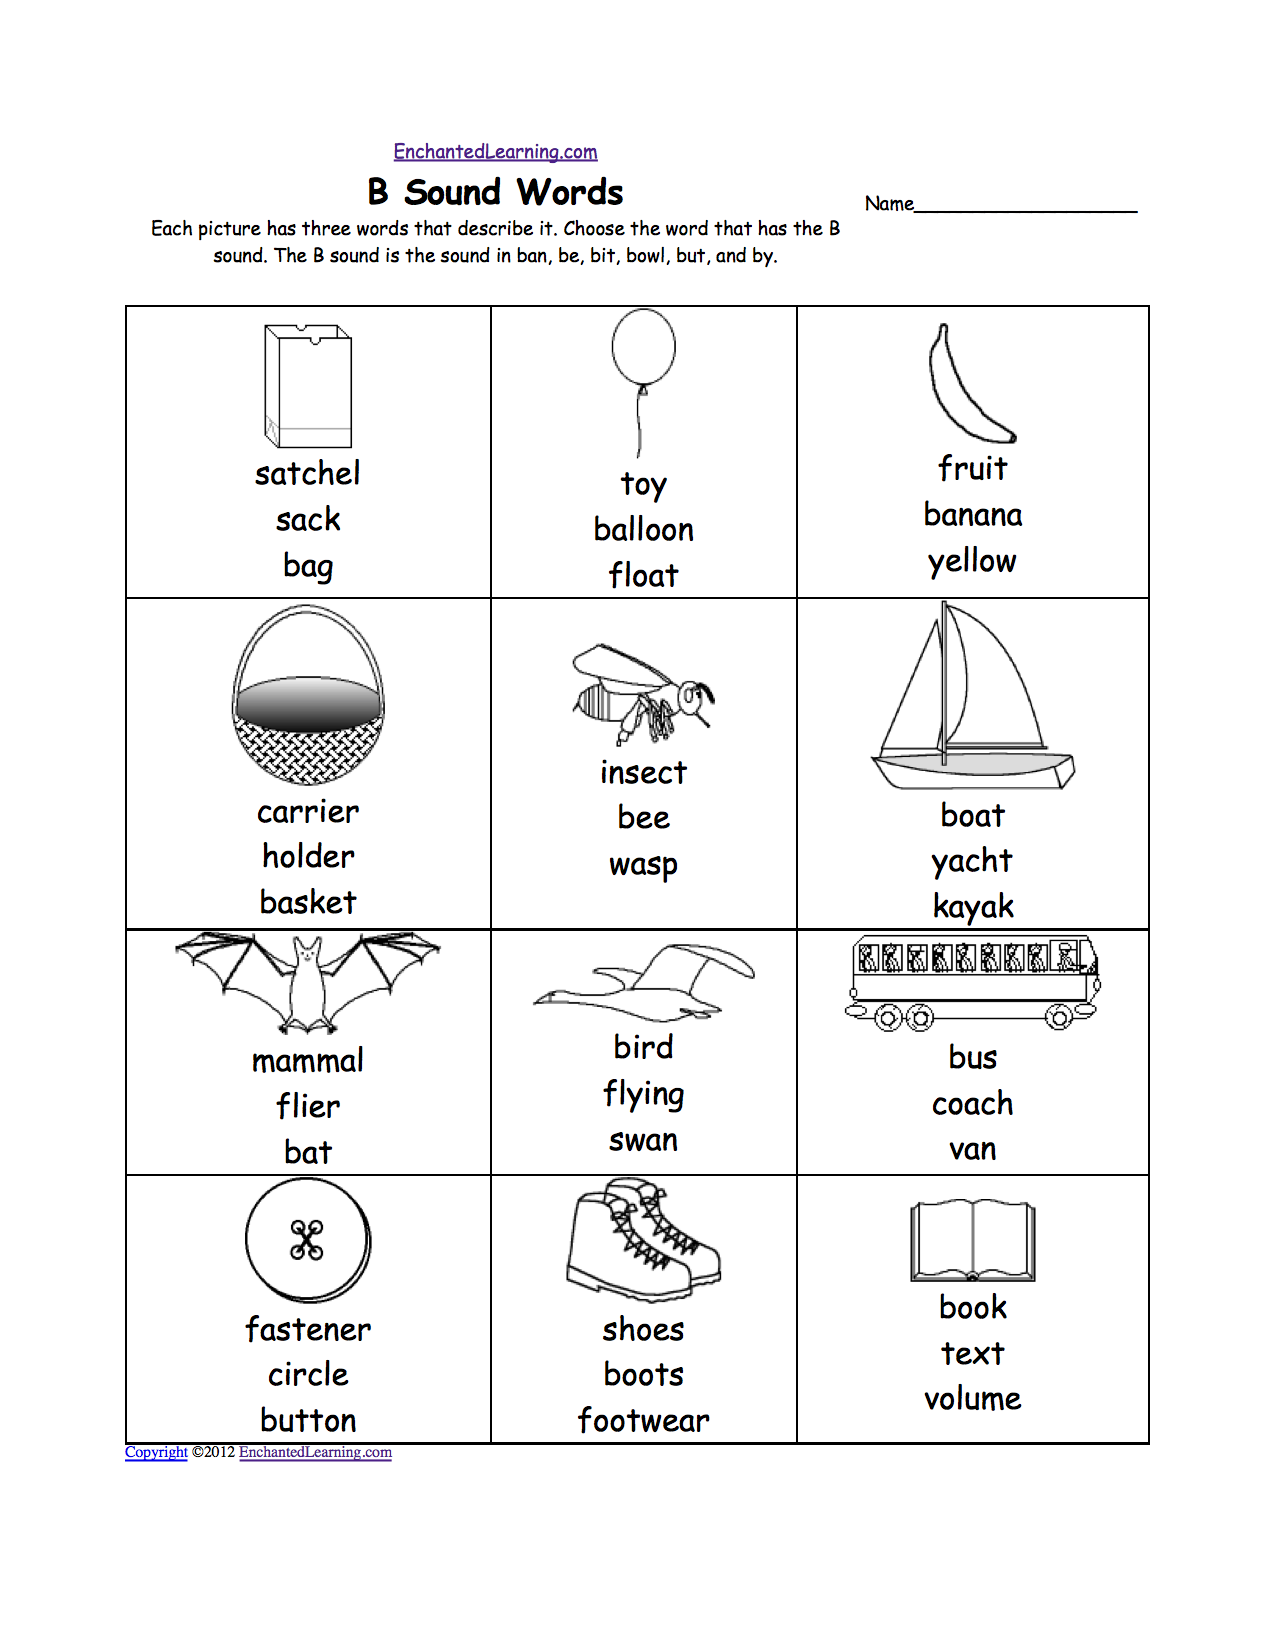 Aldiablosus  Inspiring Phonics Worksheets Multiple Choice Worksheets To Print  With Hot Quotbquot Sound Phonics Worksheet Multiple Choice Each Picture Has Three Words That Describe It Choose The Word That Has A Quotbquot Sound The Quotbquot Sound Is The Sound  With Nice Times Tables Worksheets To Print Also Multiplication Facts Worksheets Th Grade In Addition Adjectives In Sentences Worksheets And Translating Verbal Expressions Into Algebraic Expressions Worksheets As Well As Summary Worksheet Excel Additionally Esl Colors Worksheet From Enchantedlearningcom With Aldiablosus  Hot Phonics Worksheets Multiple Choice Worksheets To Print  With Nice Quotbquot Sound Phonics Worksheet Multiple Choice Each Picture Has Three Words That Describe It Choose The Word That Has A Quotbquot Sound The Quotbquot Sound Is The Sound  And Inspiring Times Tables Worksheets To Print Also Multiplication Facts Worksheets Th Grade In Addition Adjectives In Sentences Worksheets From Enchantedlearningcom